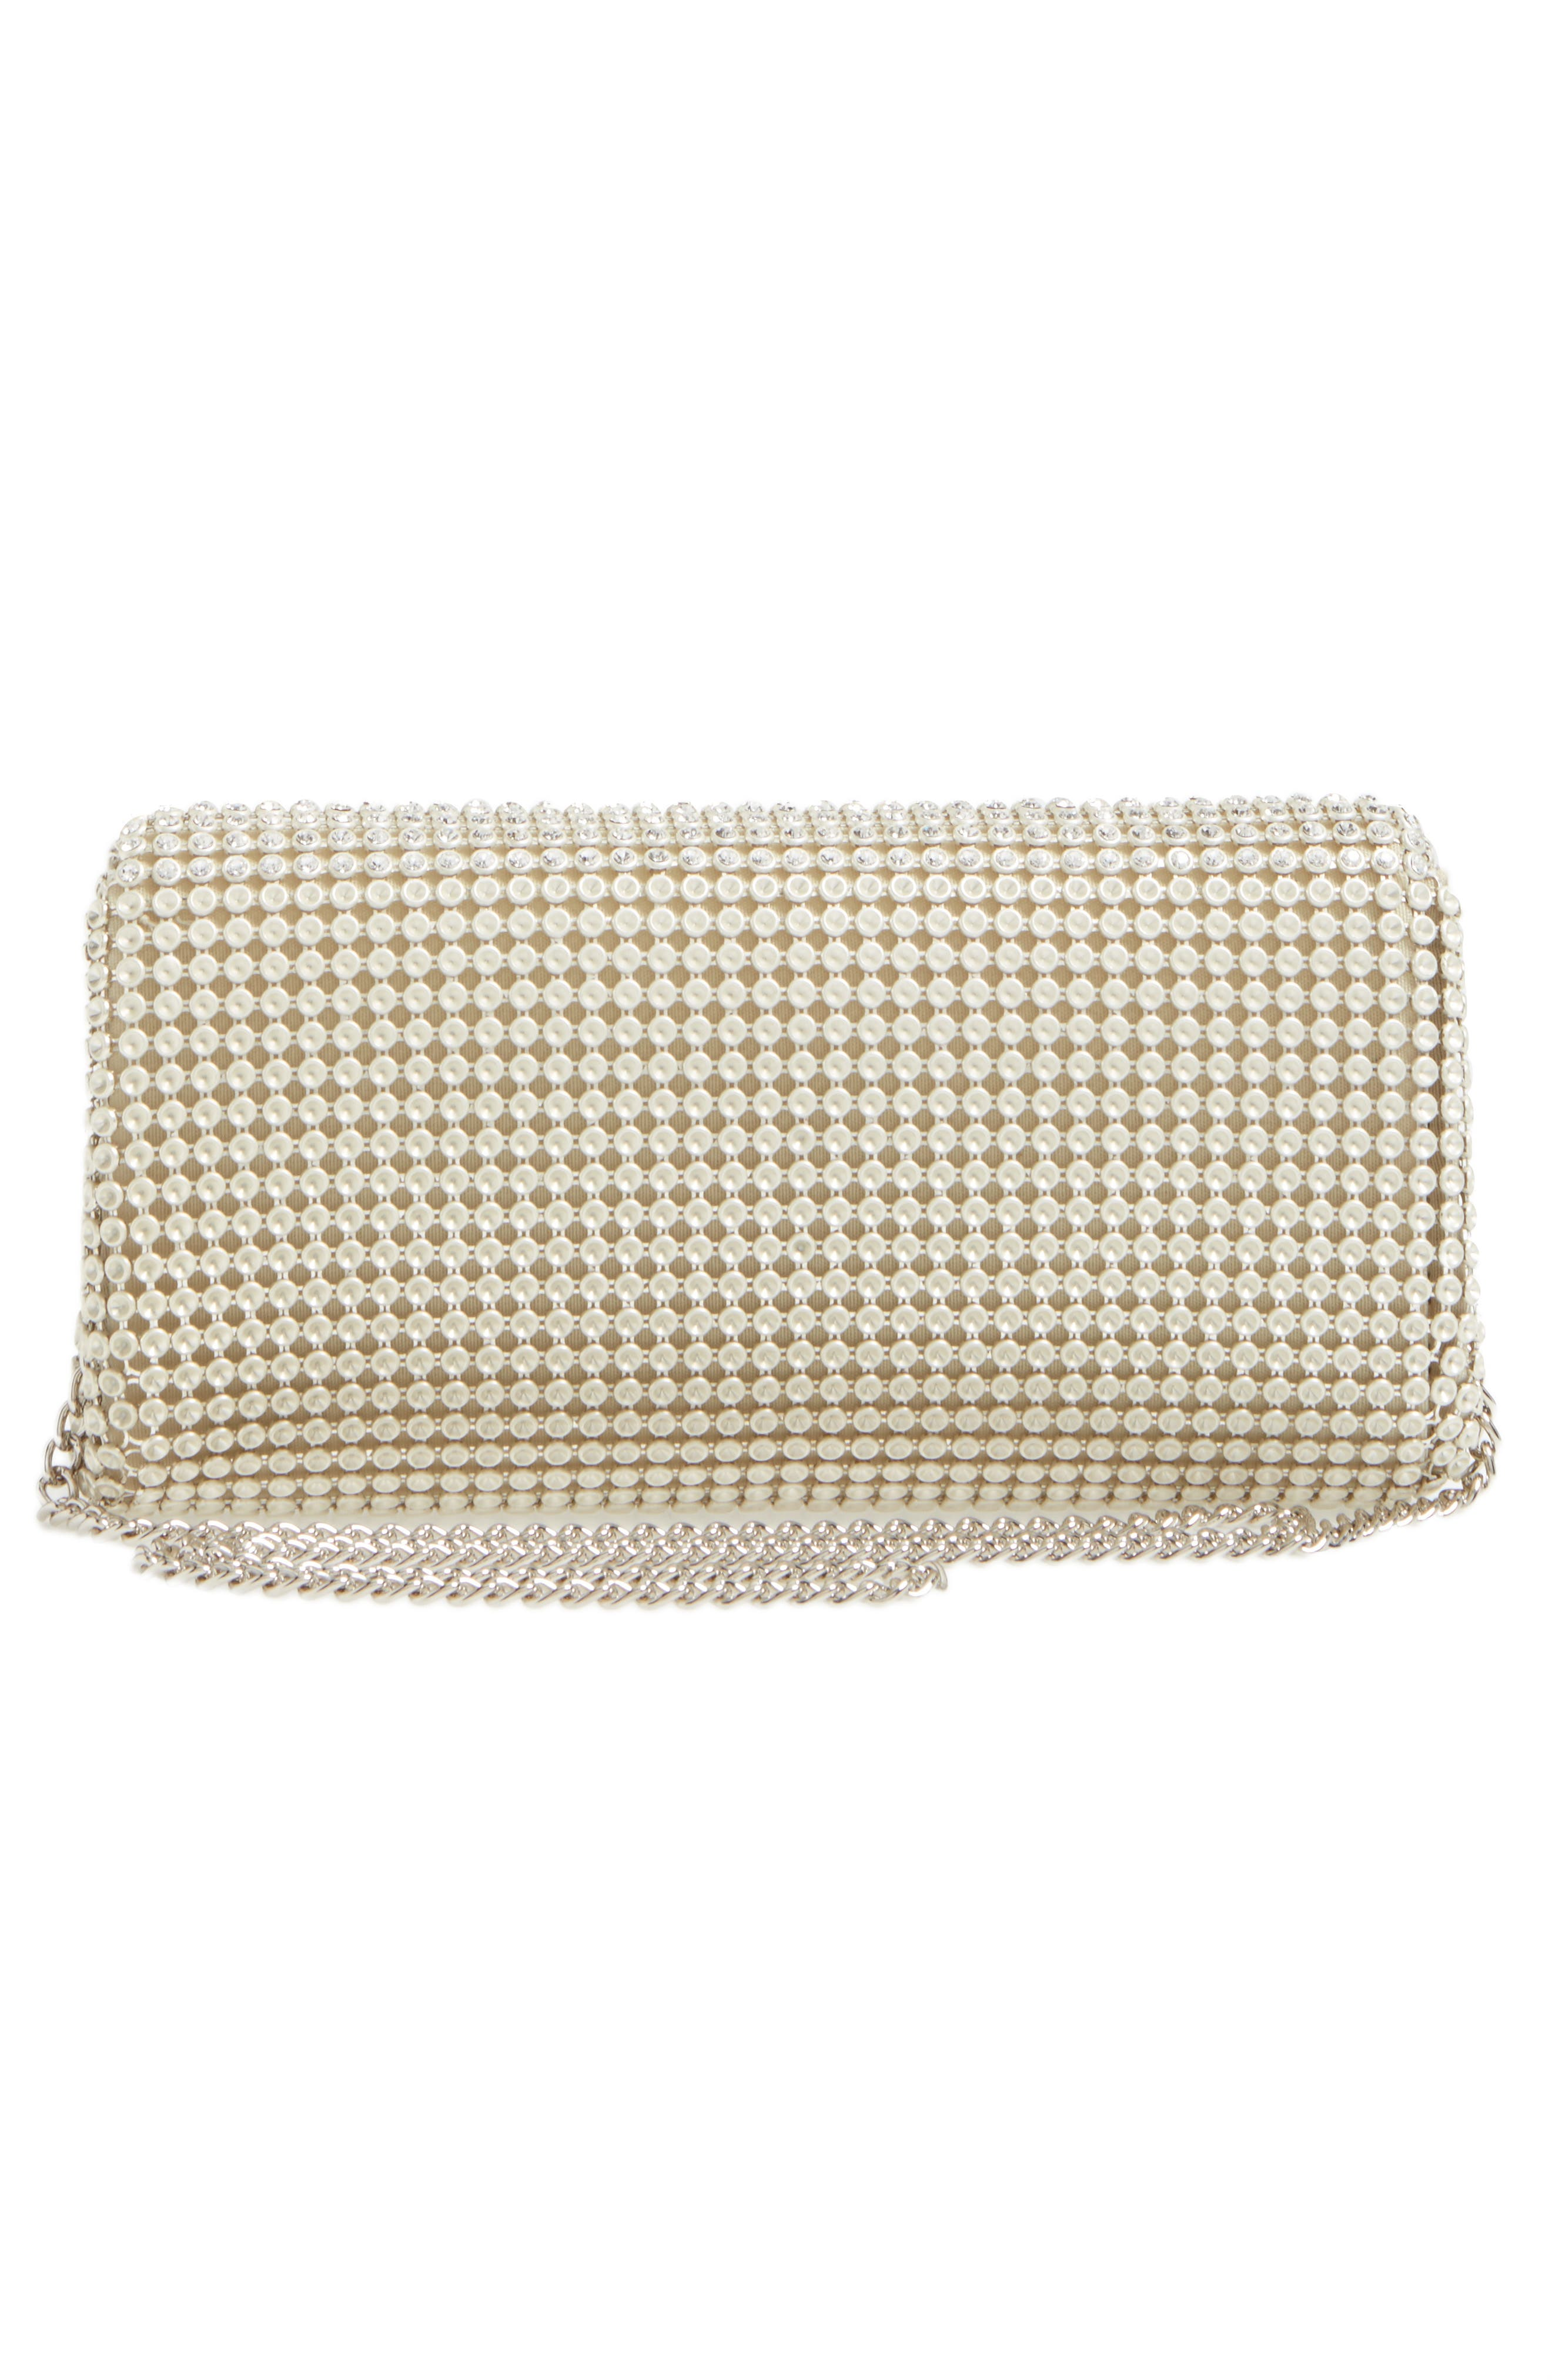 Alternate Image 2  - Whiting & Davis Crystal Triangle Clutch